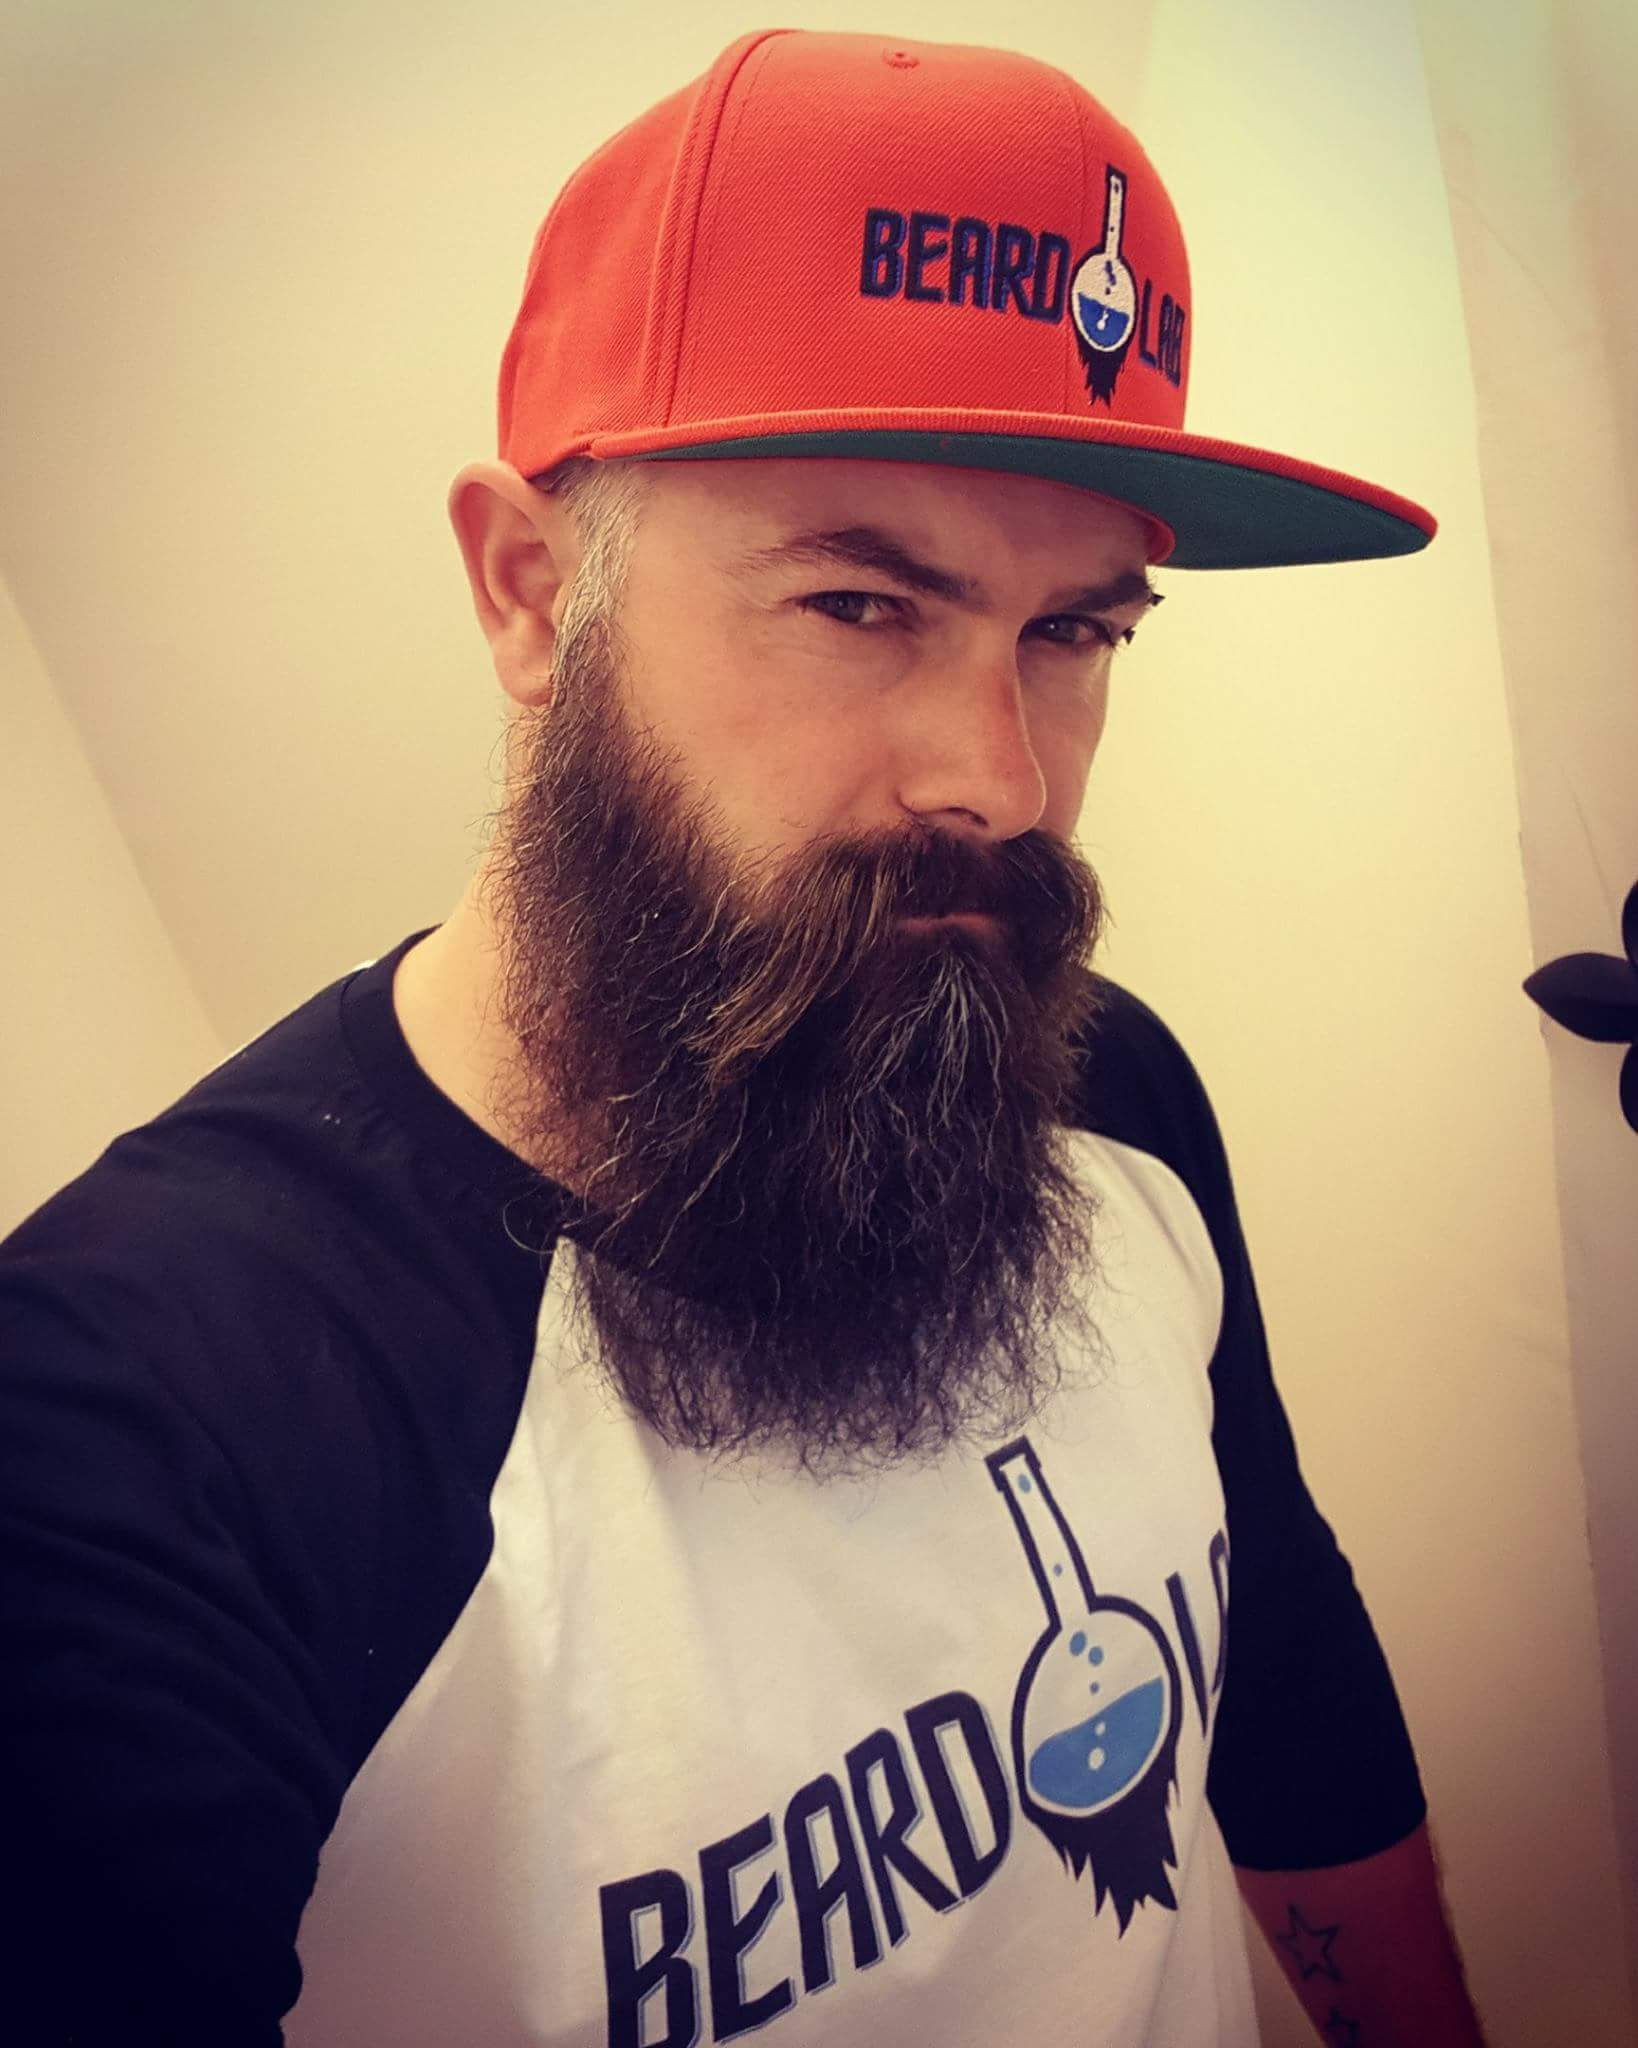 Beard Lab Snapback by Yupoong The Classic Snapback - BeardLab Embroidered Hats - Beard Oil UK, Beard Care BeardLab - UK Beard Oil - Beard Products